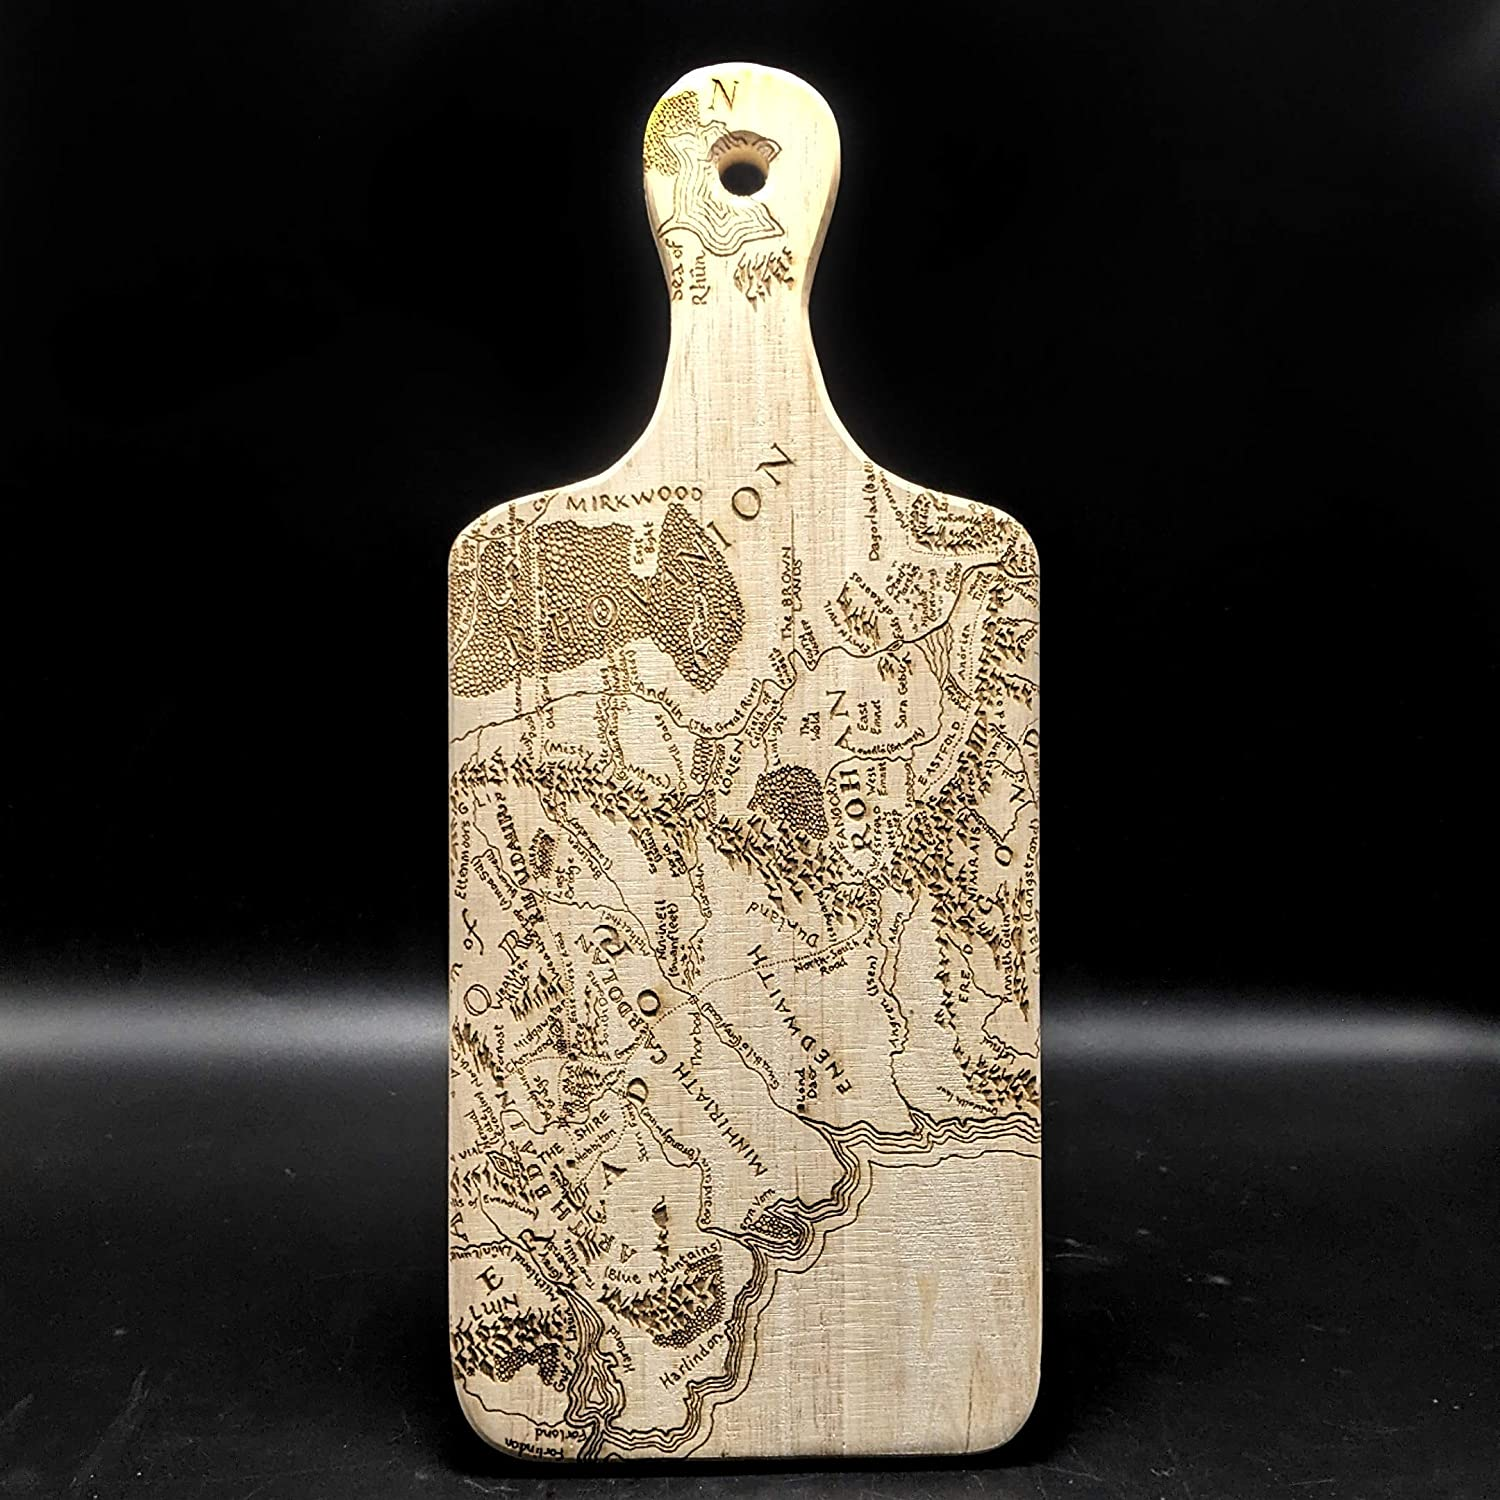 MAP OF MIDDLE EARTH Tulsa Mall Quantity limited Engraved Cutting of by Inspired Lord Board